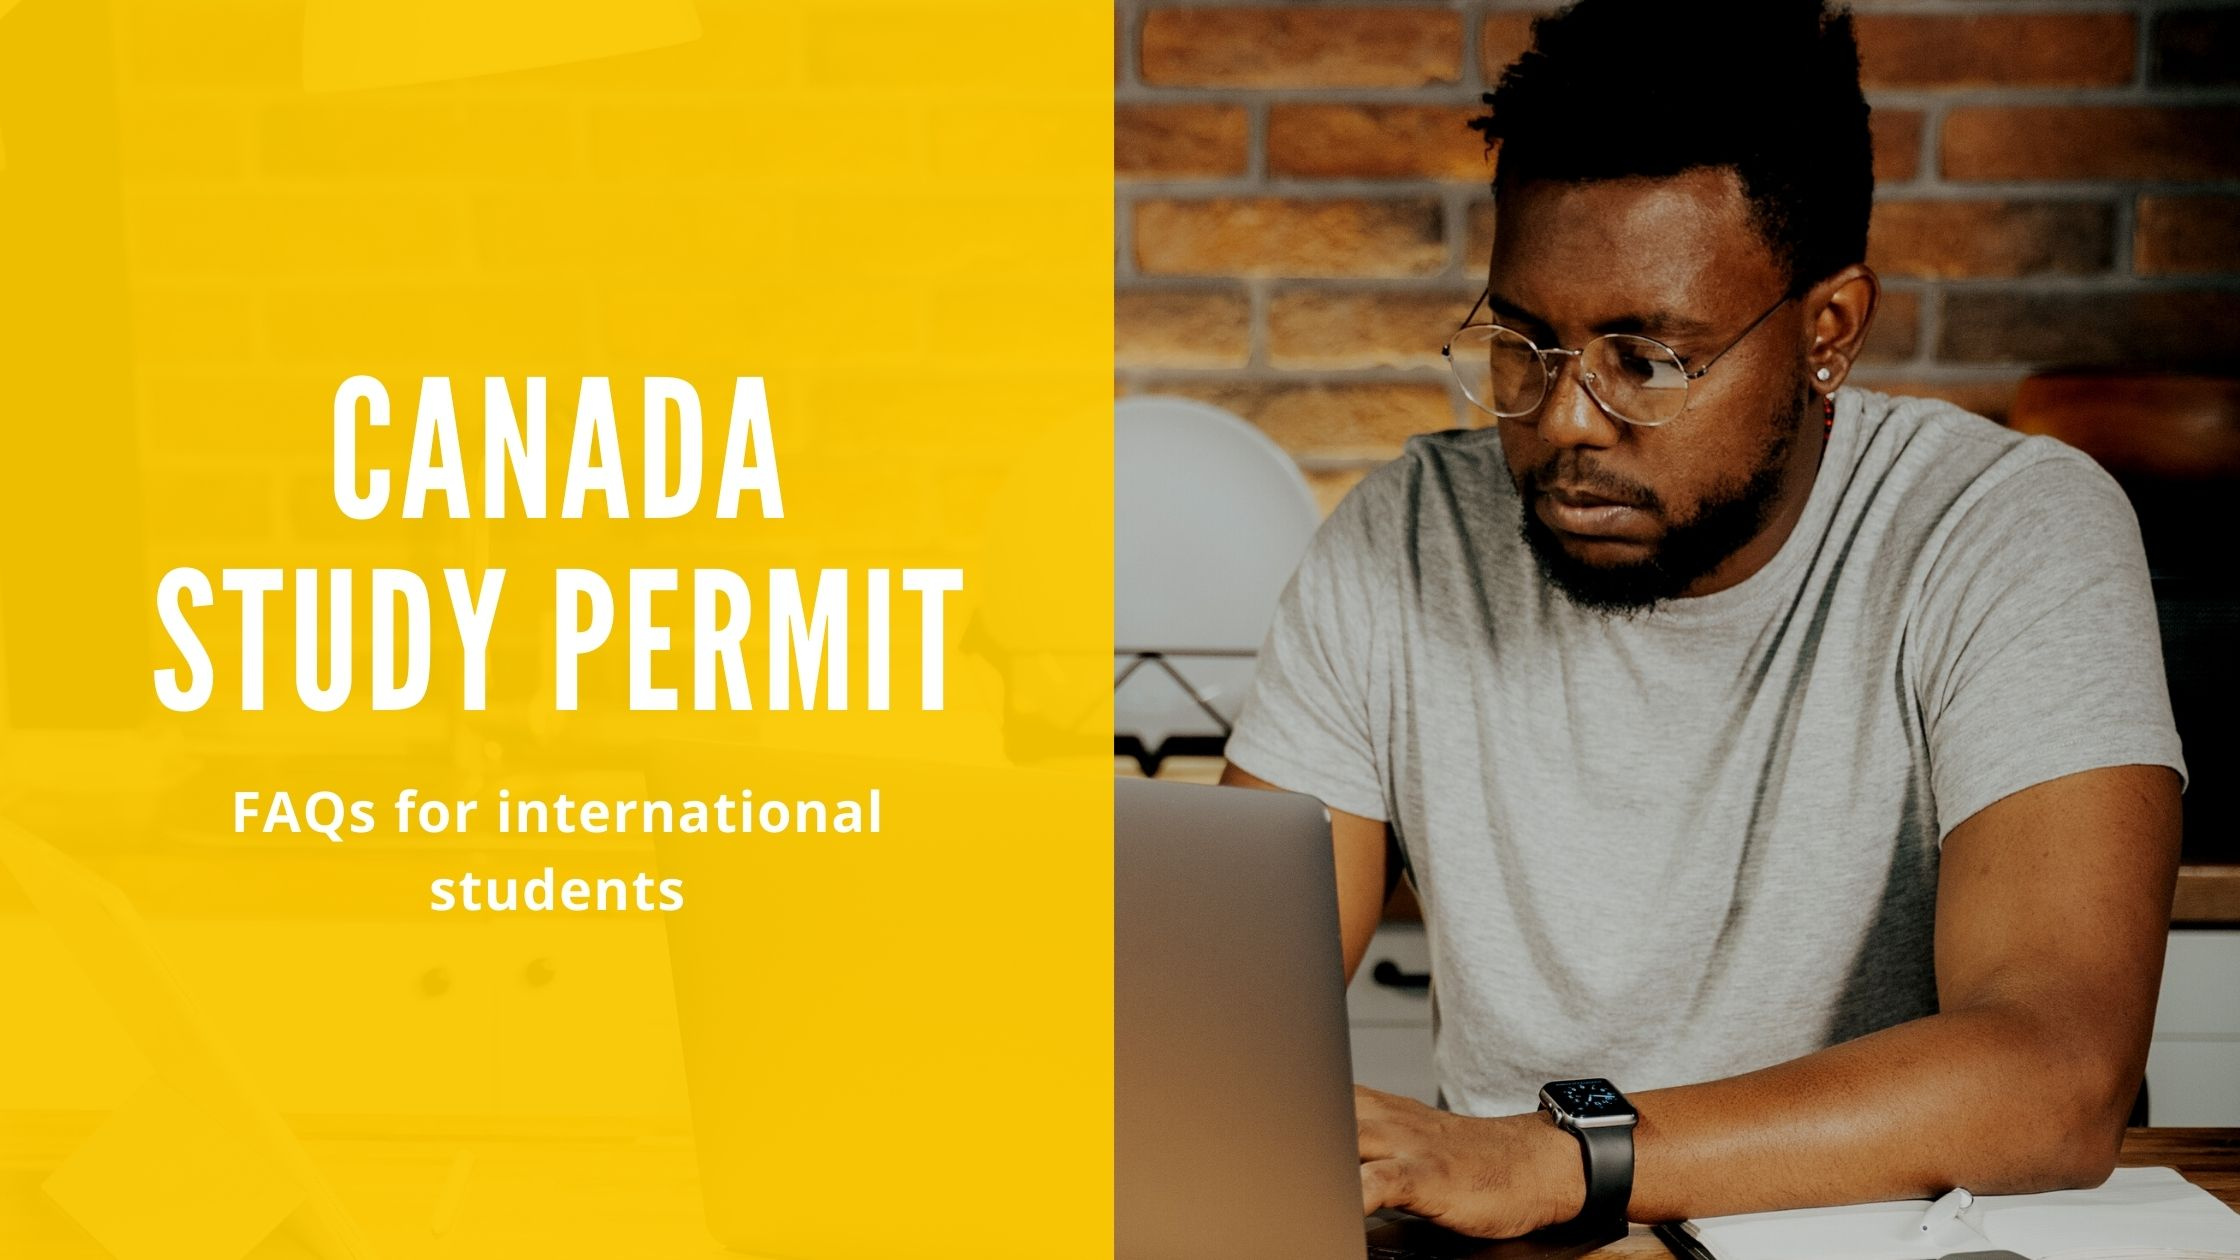 Canada Study Permit: FAQs for international students